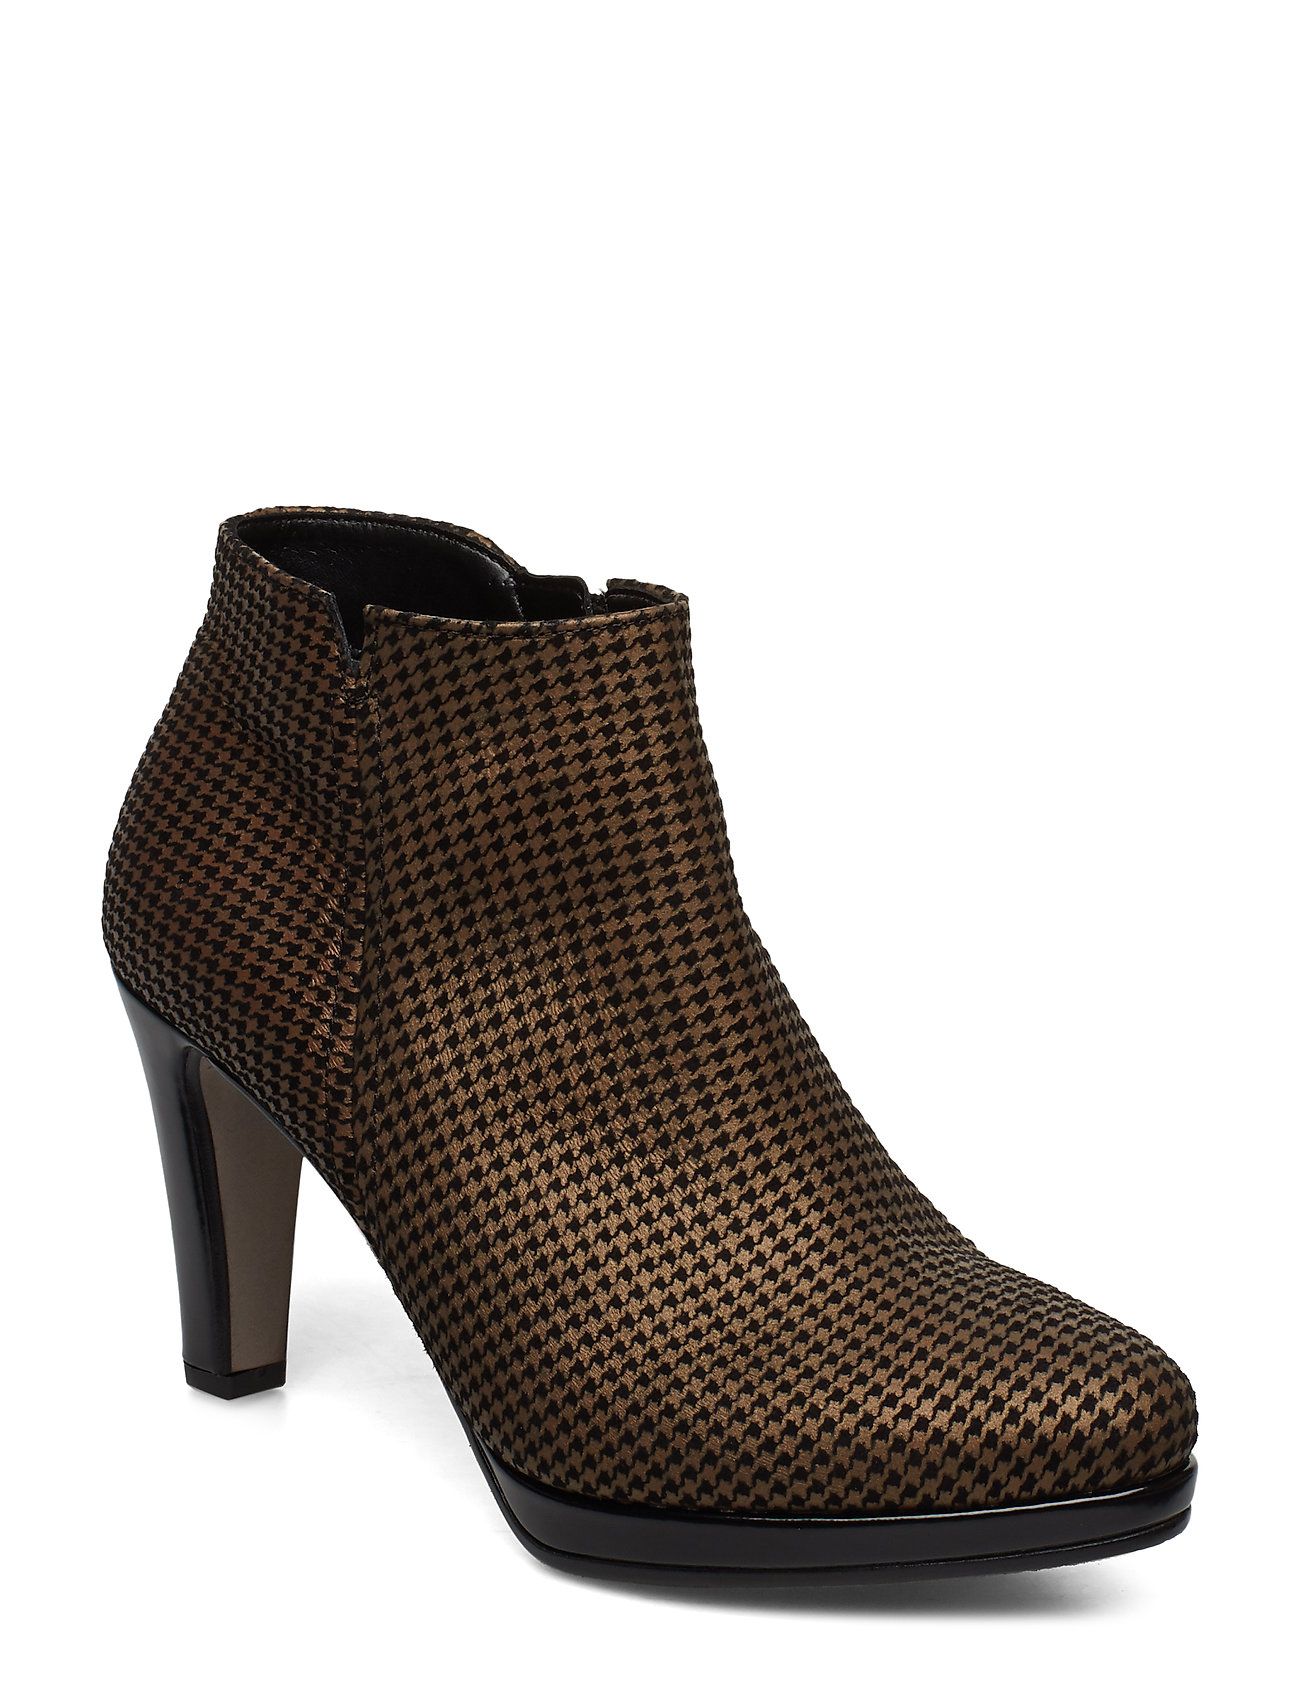 Image of Ankle Boots Shoes Boots Ankle Boots Ankle Boot - Heel Brun Gabor (3406225567)